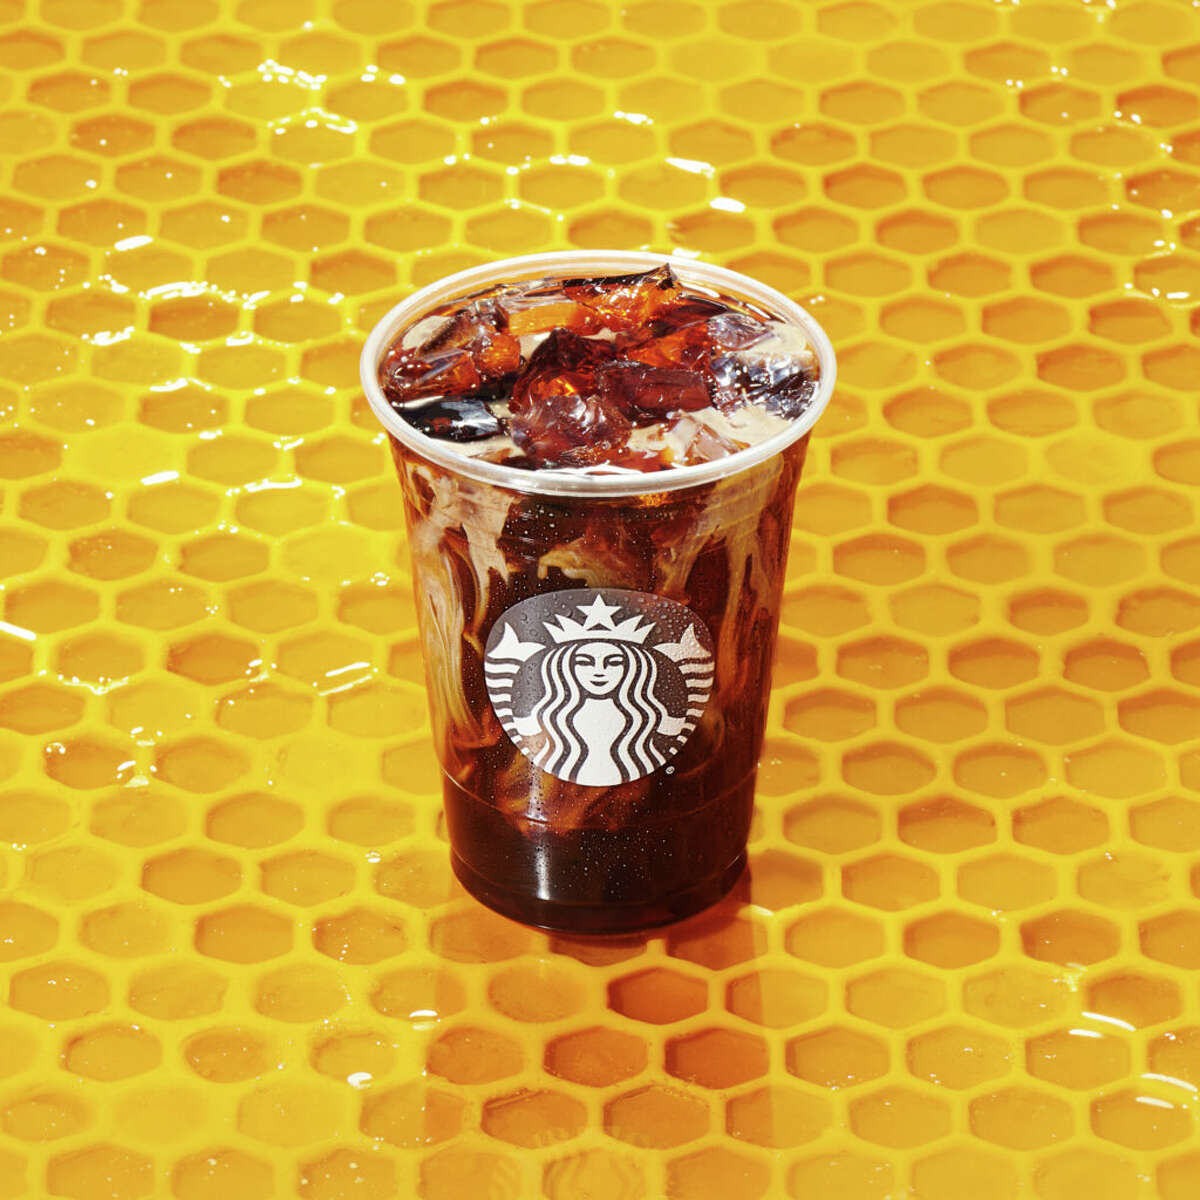 Honey Almondmilk Cold Brew from Starbucks. Honey Almondmilk Cold Brew As the name implies, this drink is made by combining cold brew coffee with honey and adding almond milk.